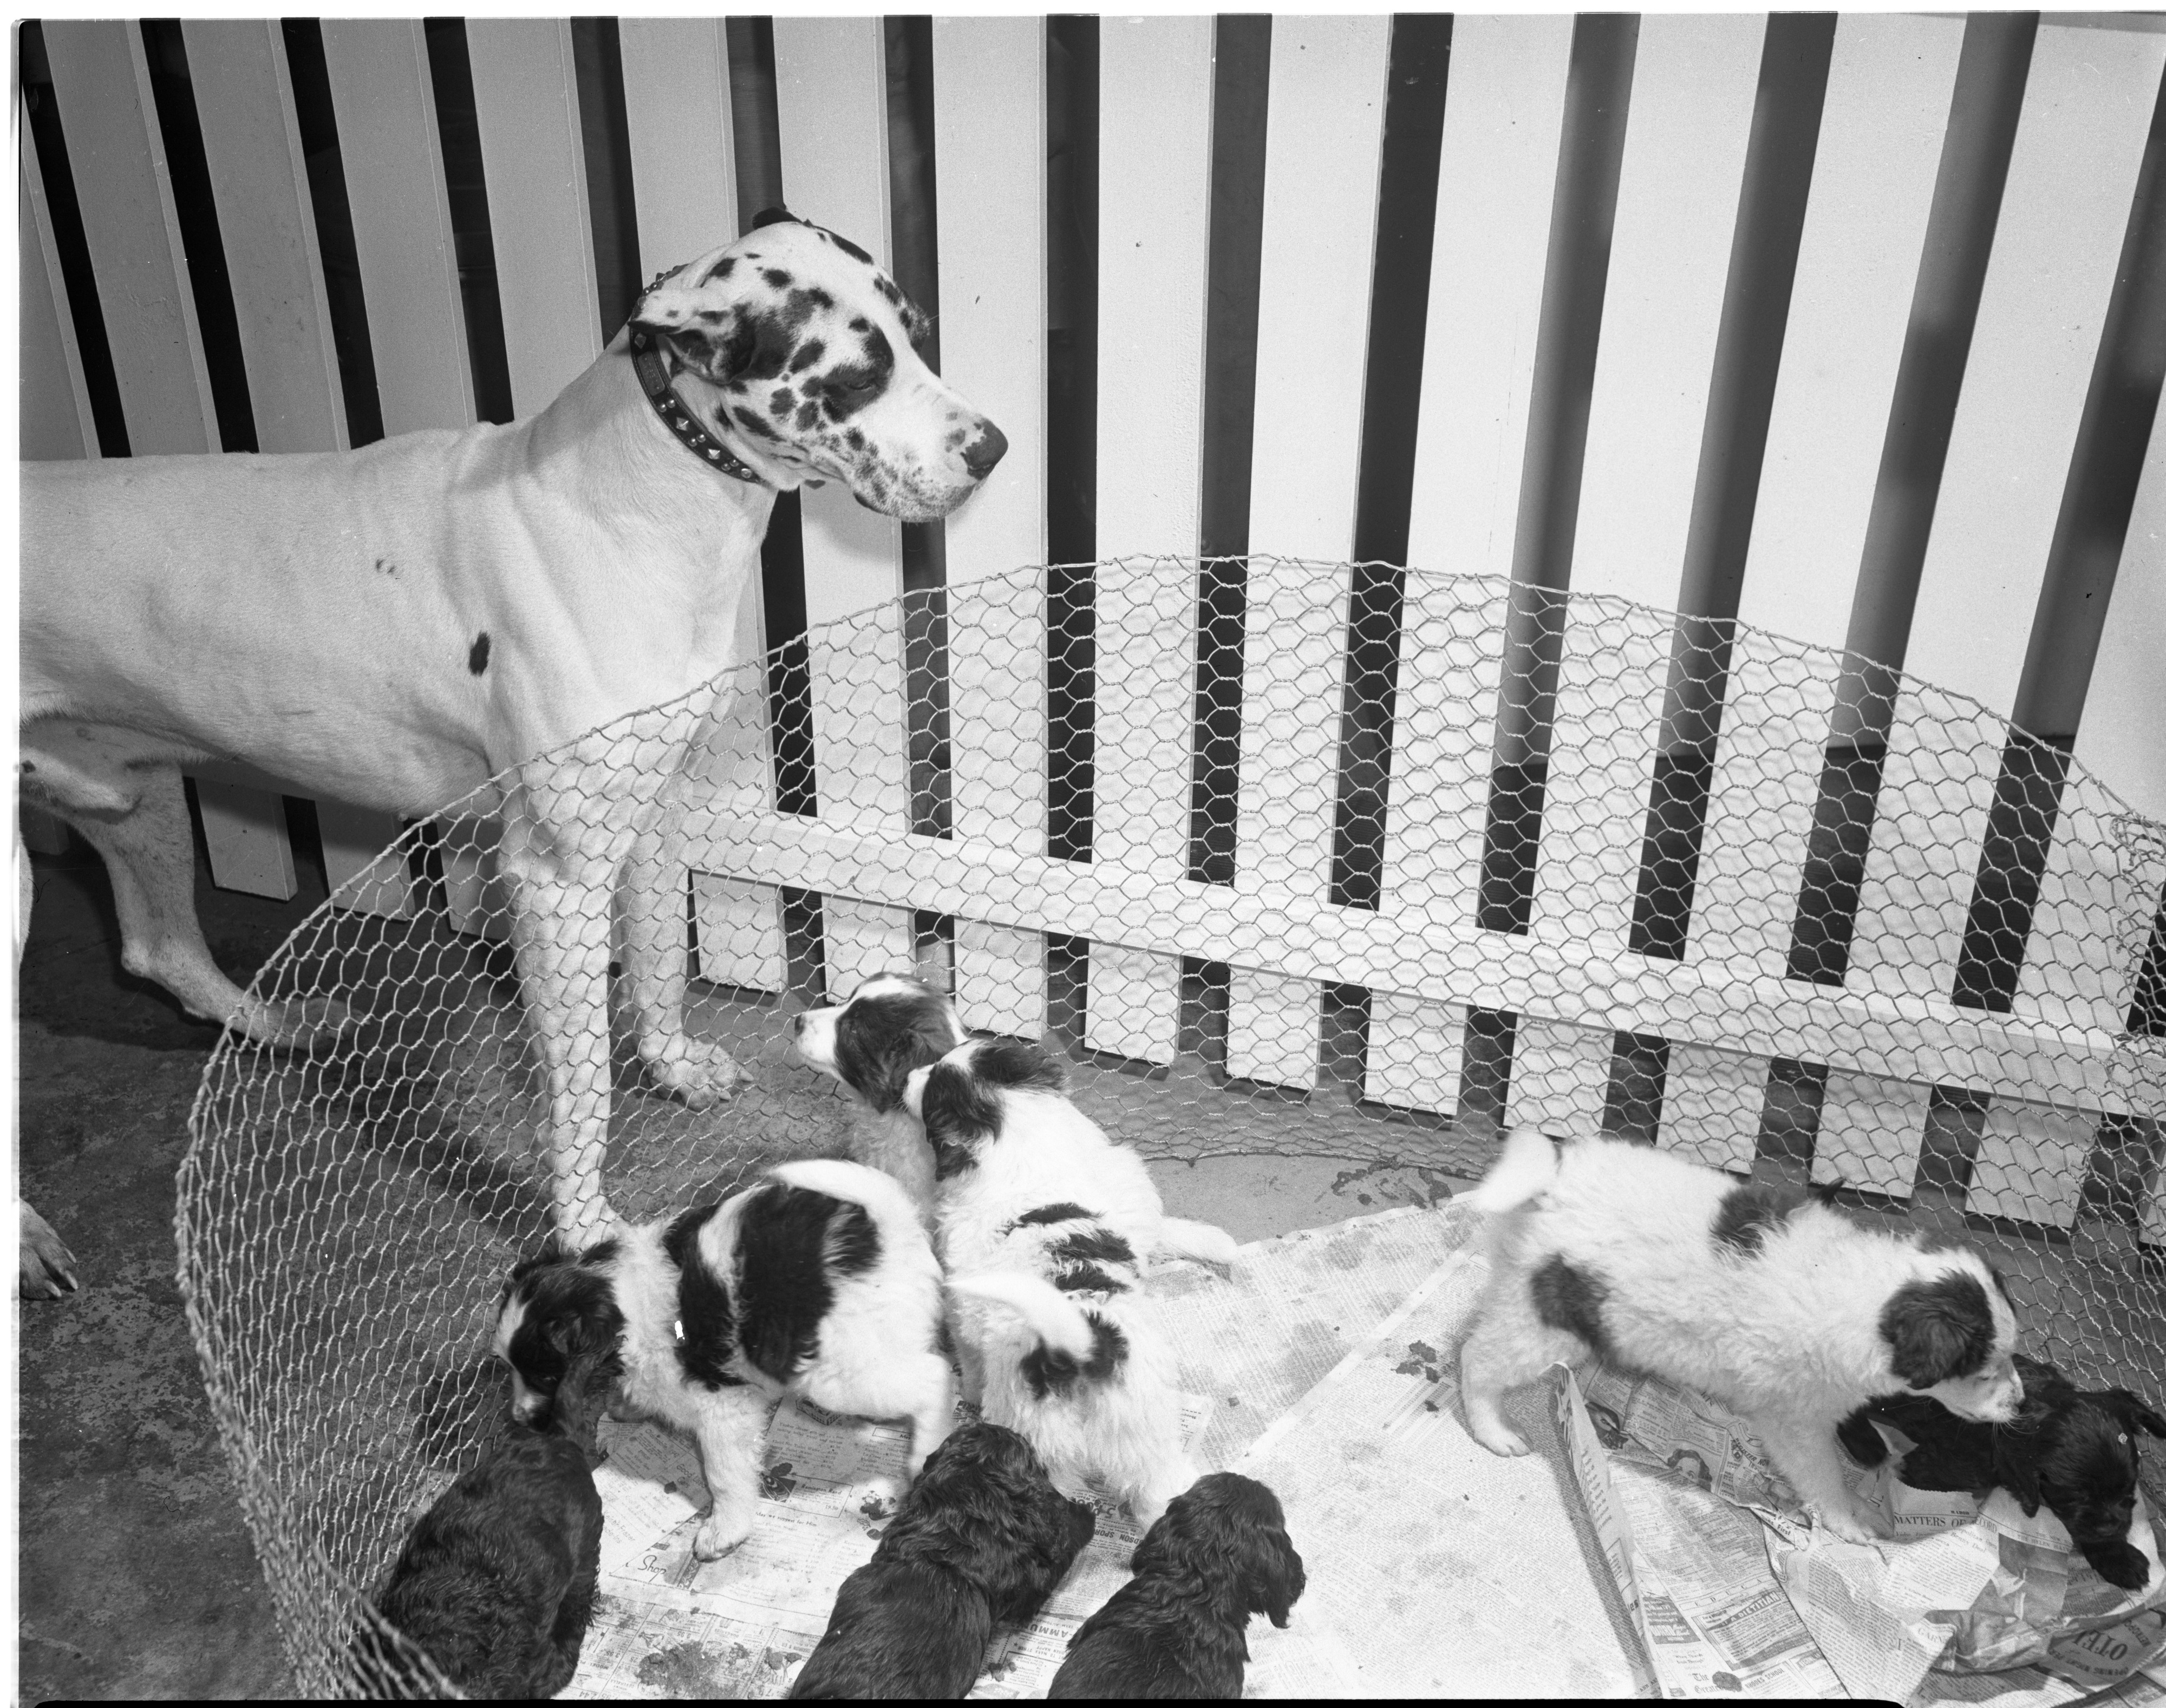 Humane Society Hopes Eight Pups Will Be Placed In Christmas Stockings, December 1948 image